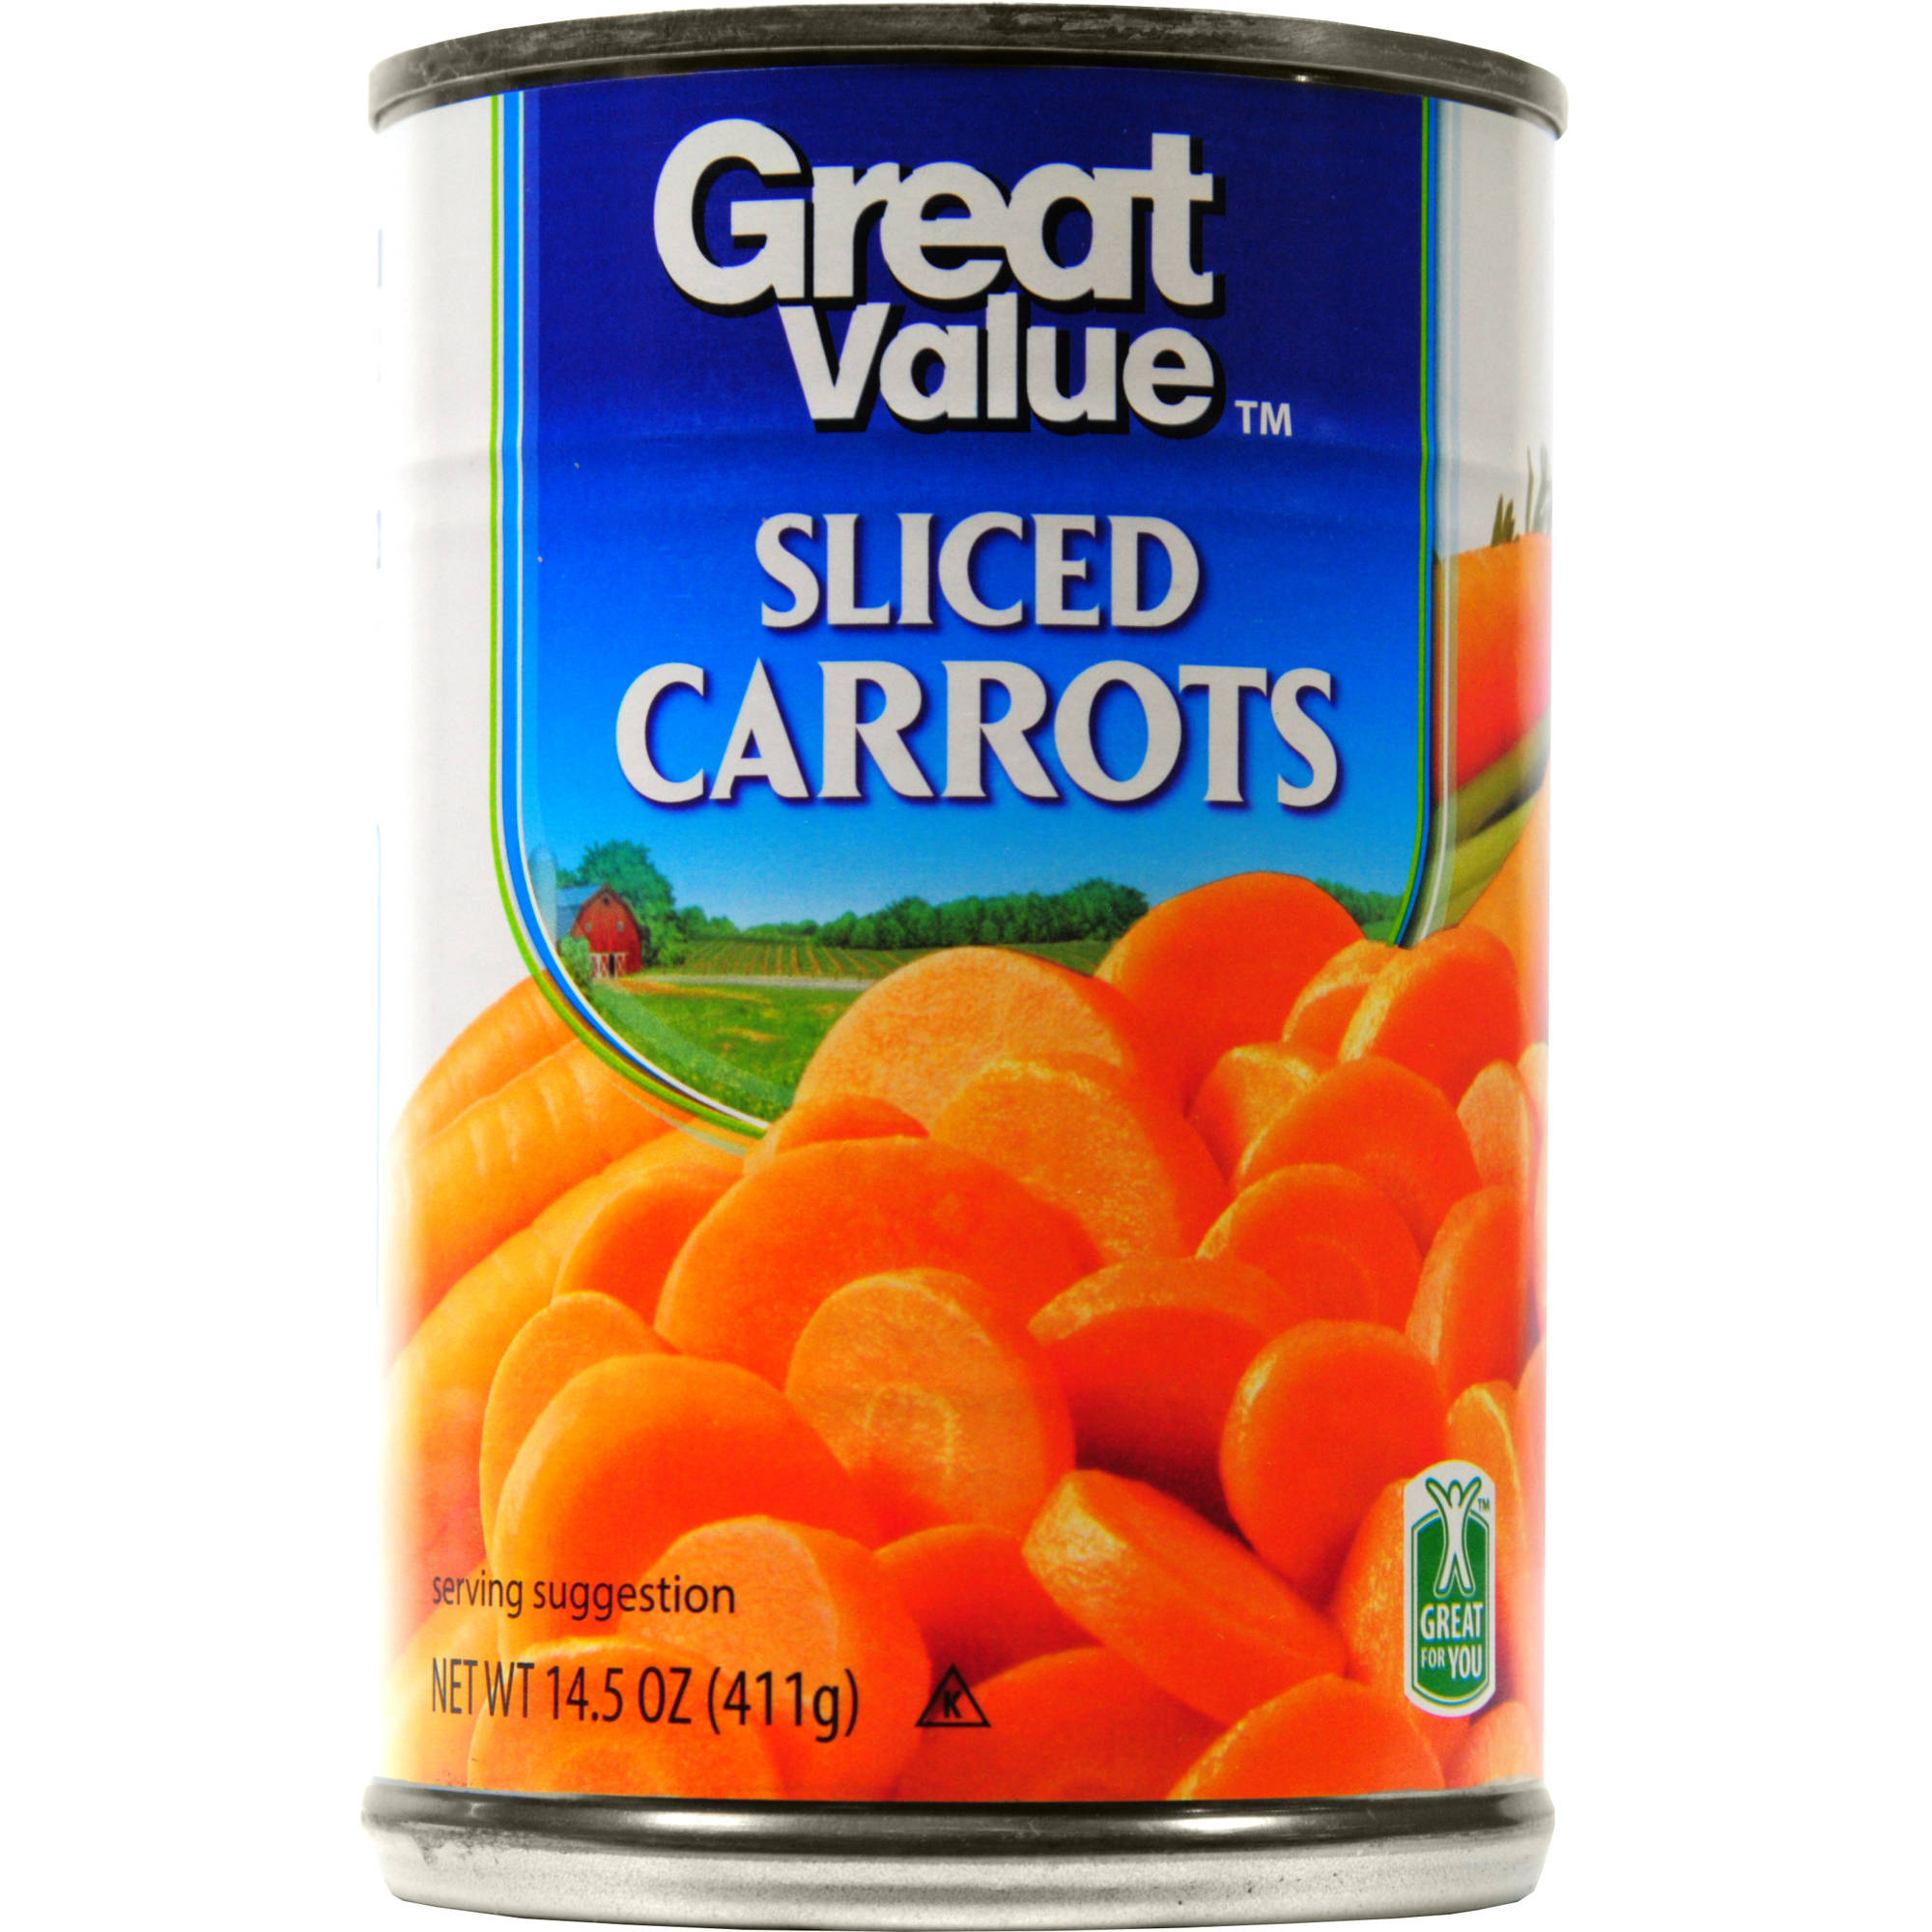 Great Value: Sliced Carrots, 14.5 Oz